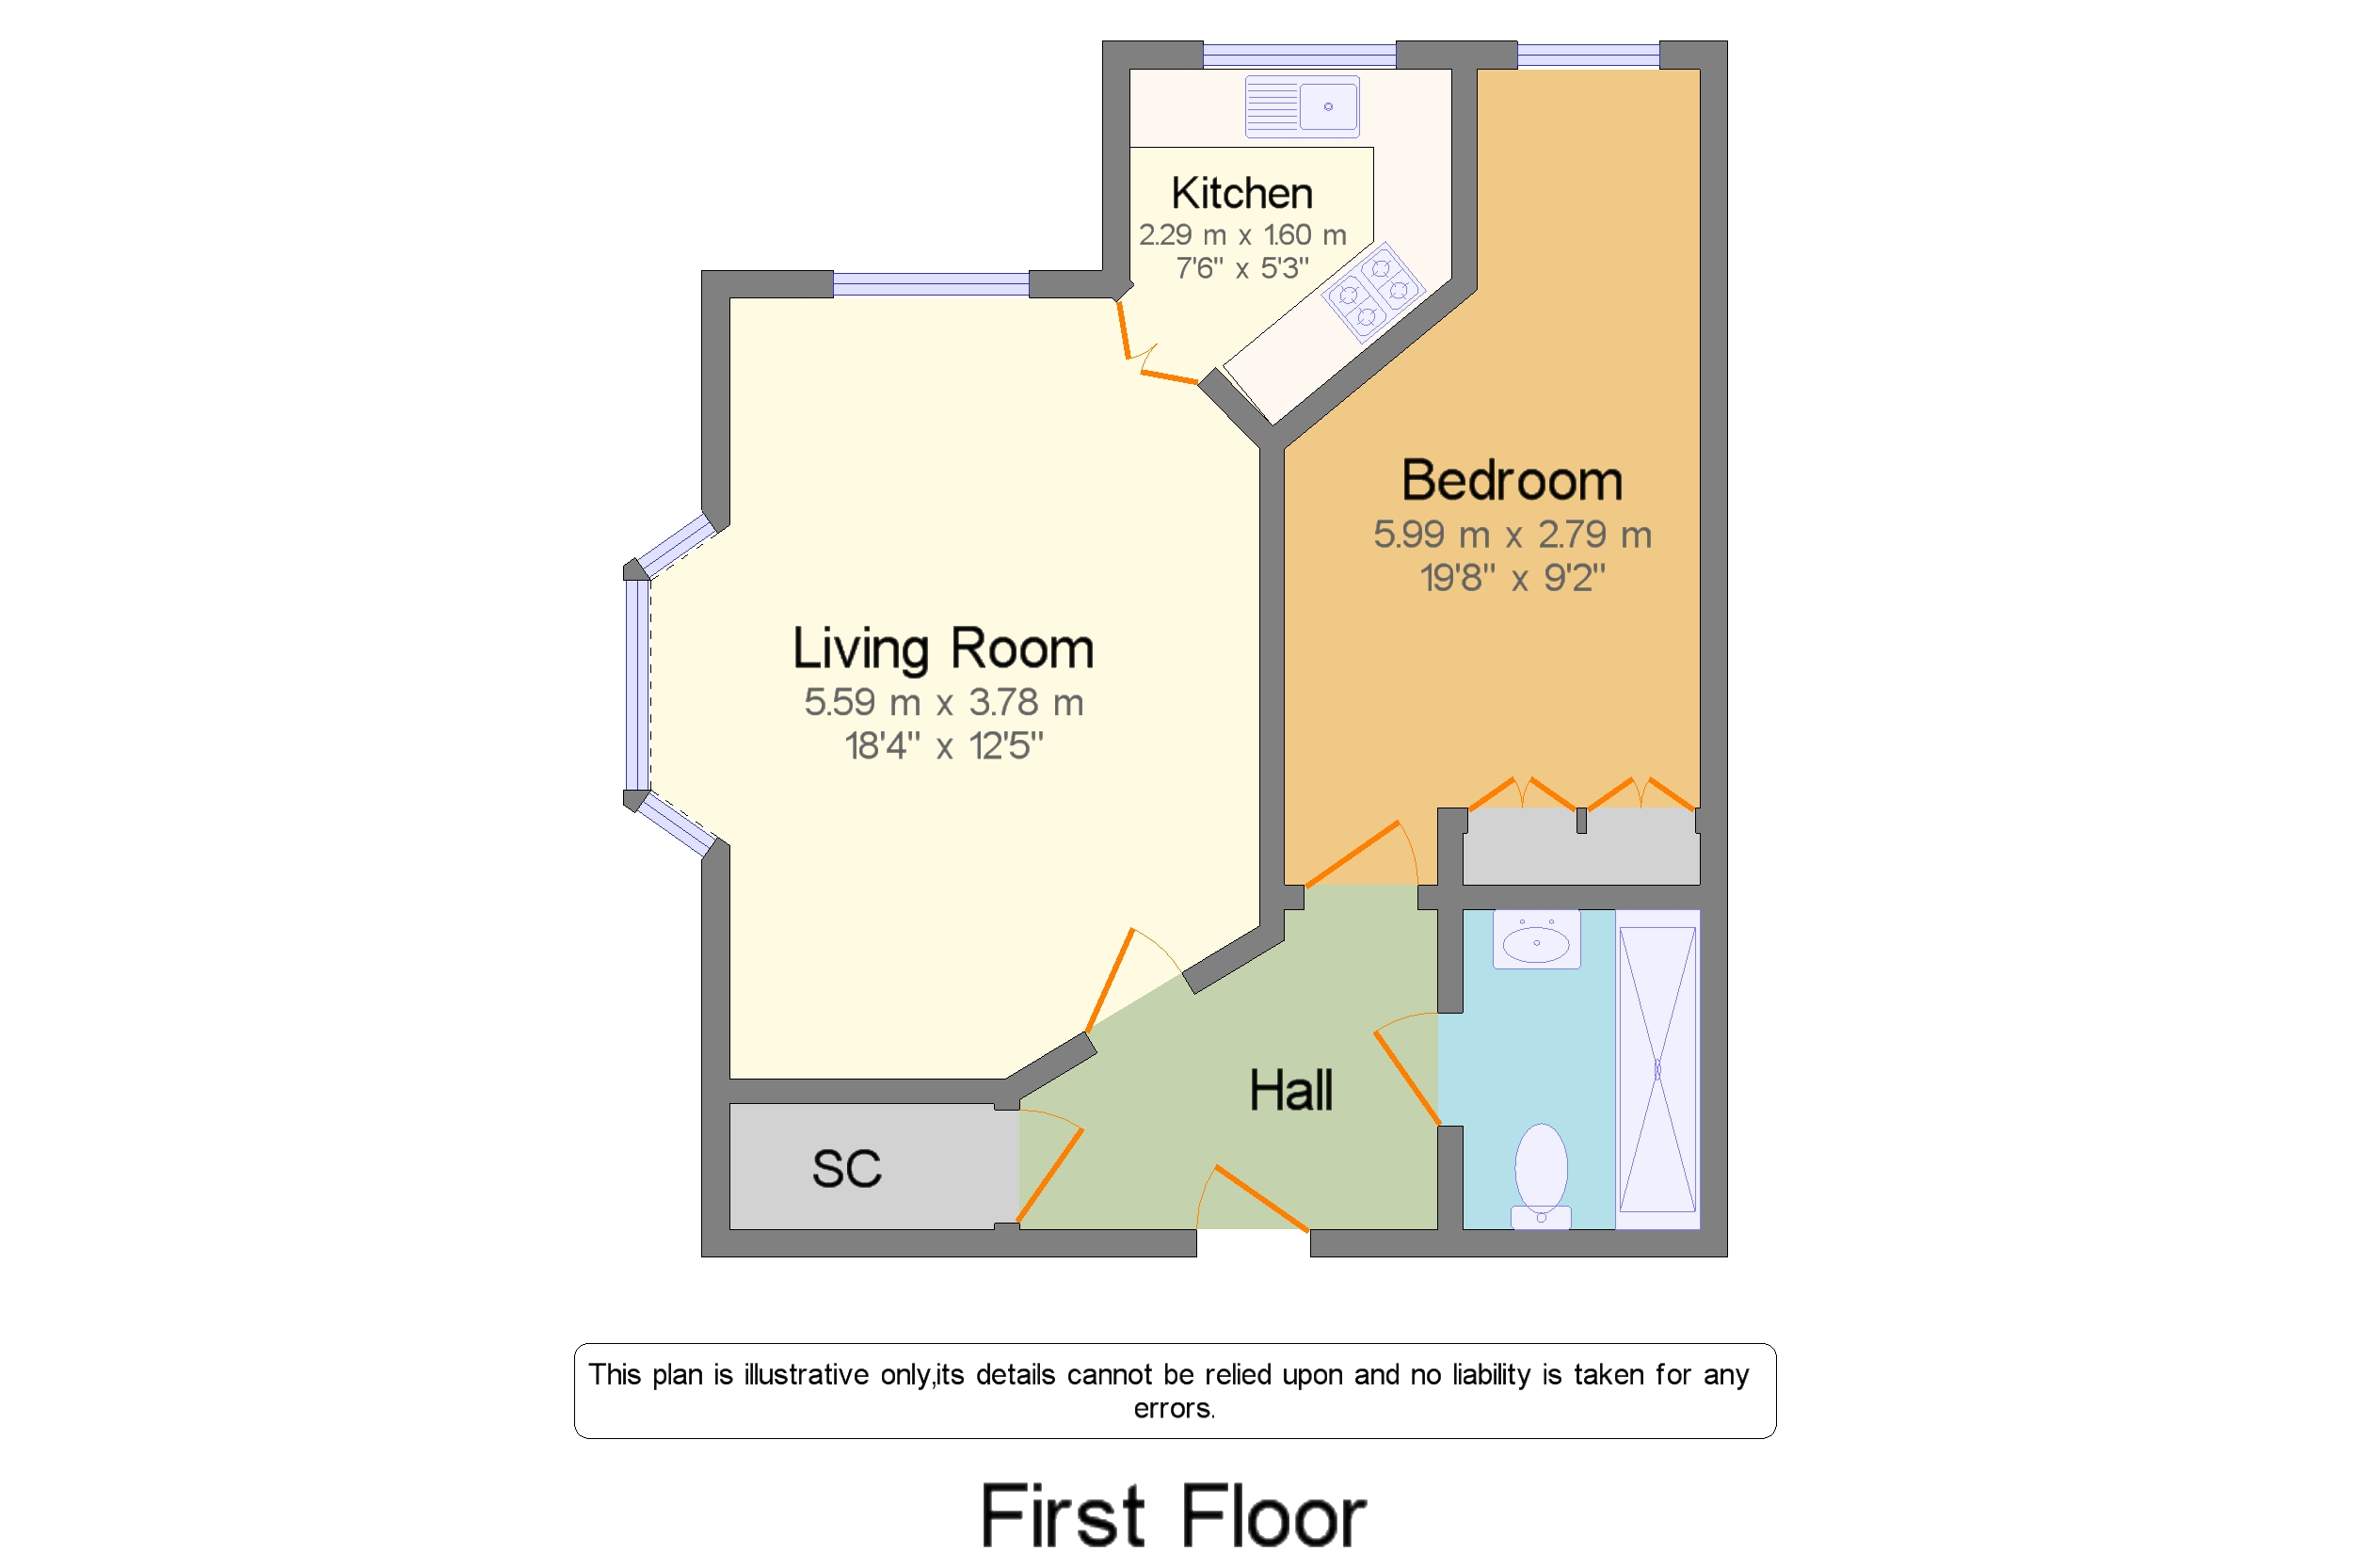 Haddon Court Hardwick Mount Buxton Sk17 1 Bedroom Flat For Sale 55274716 Primelocation